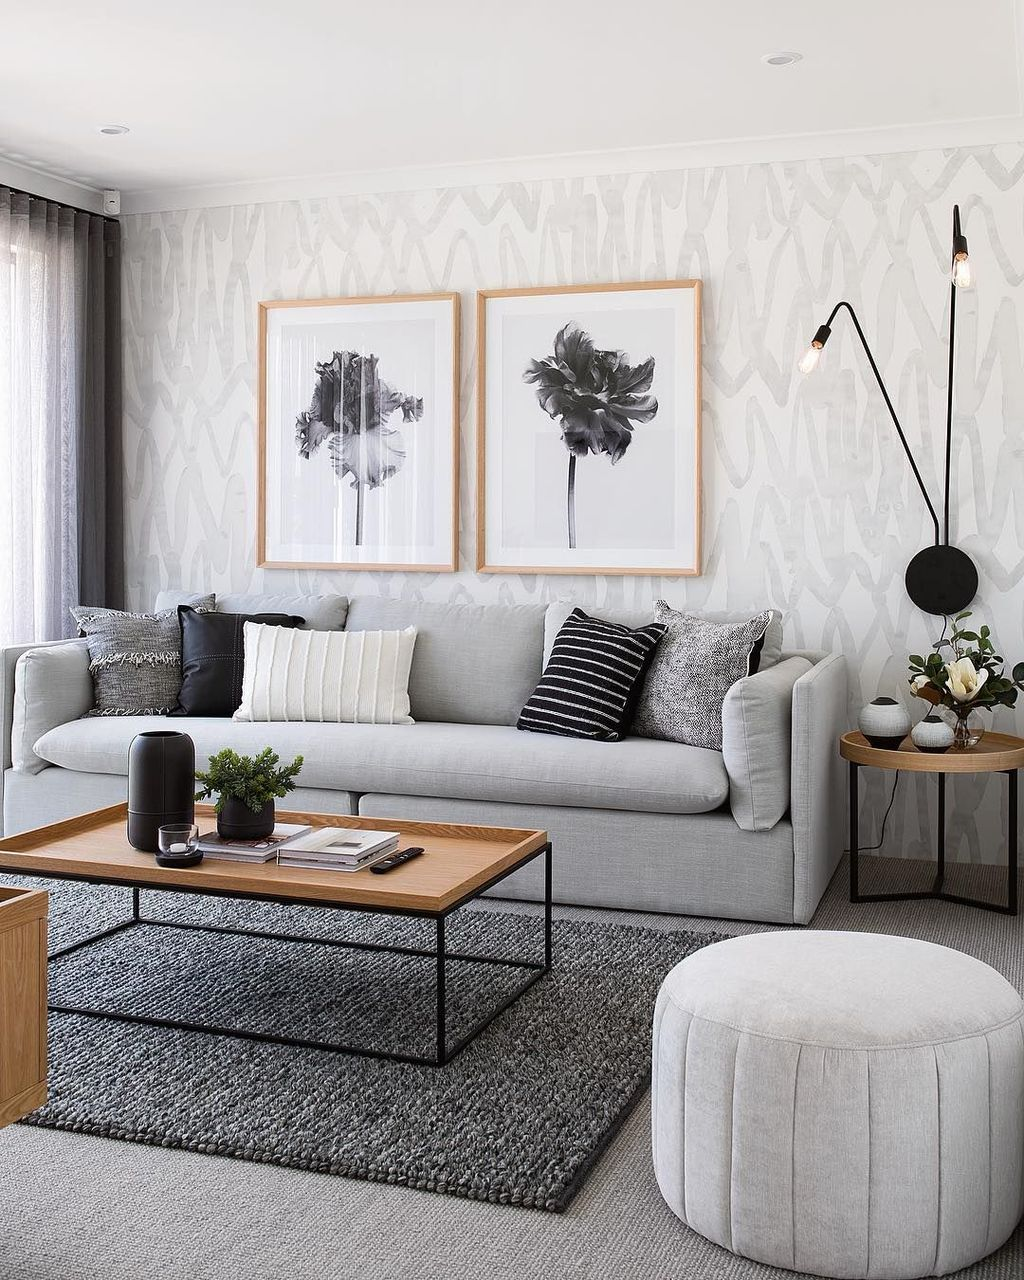 Stunning Neutral Decor Ideas For Your Living Room 15